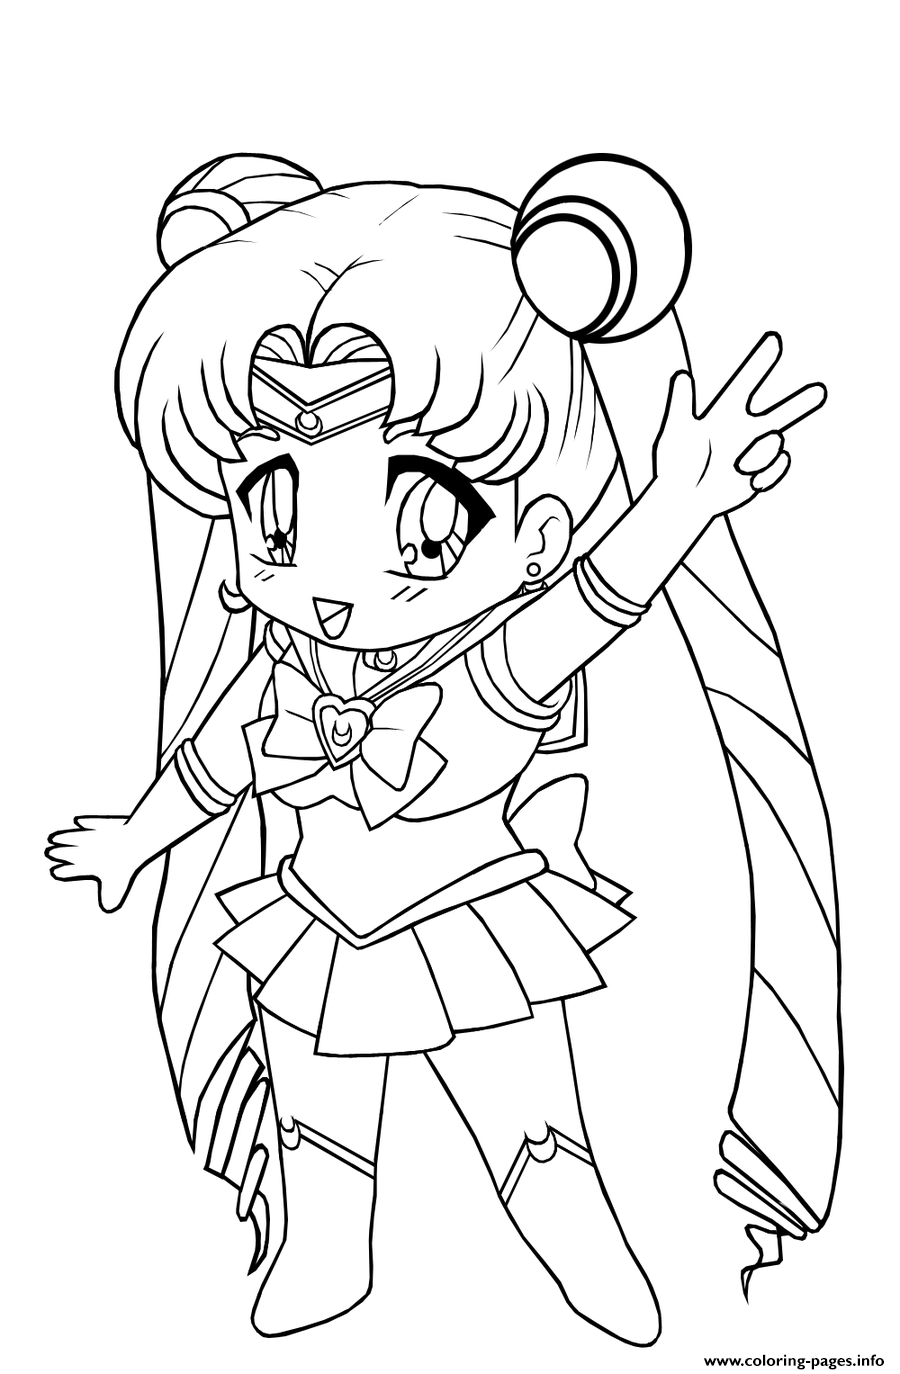 kids anime s to print de5b coloring pages printable